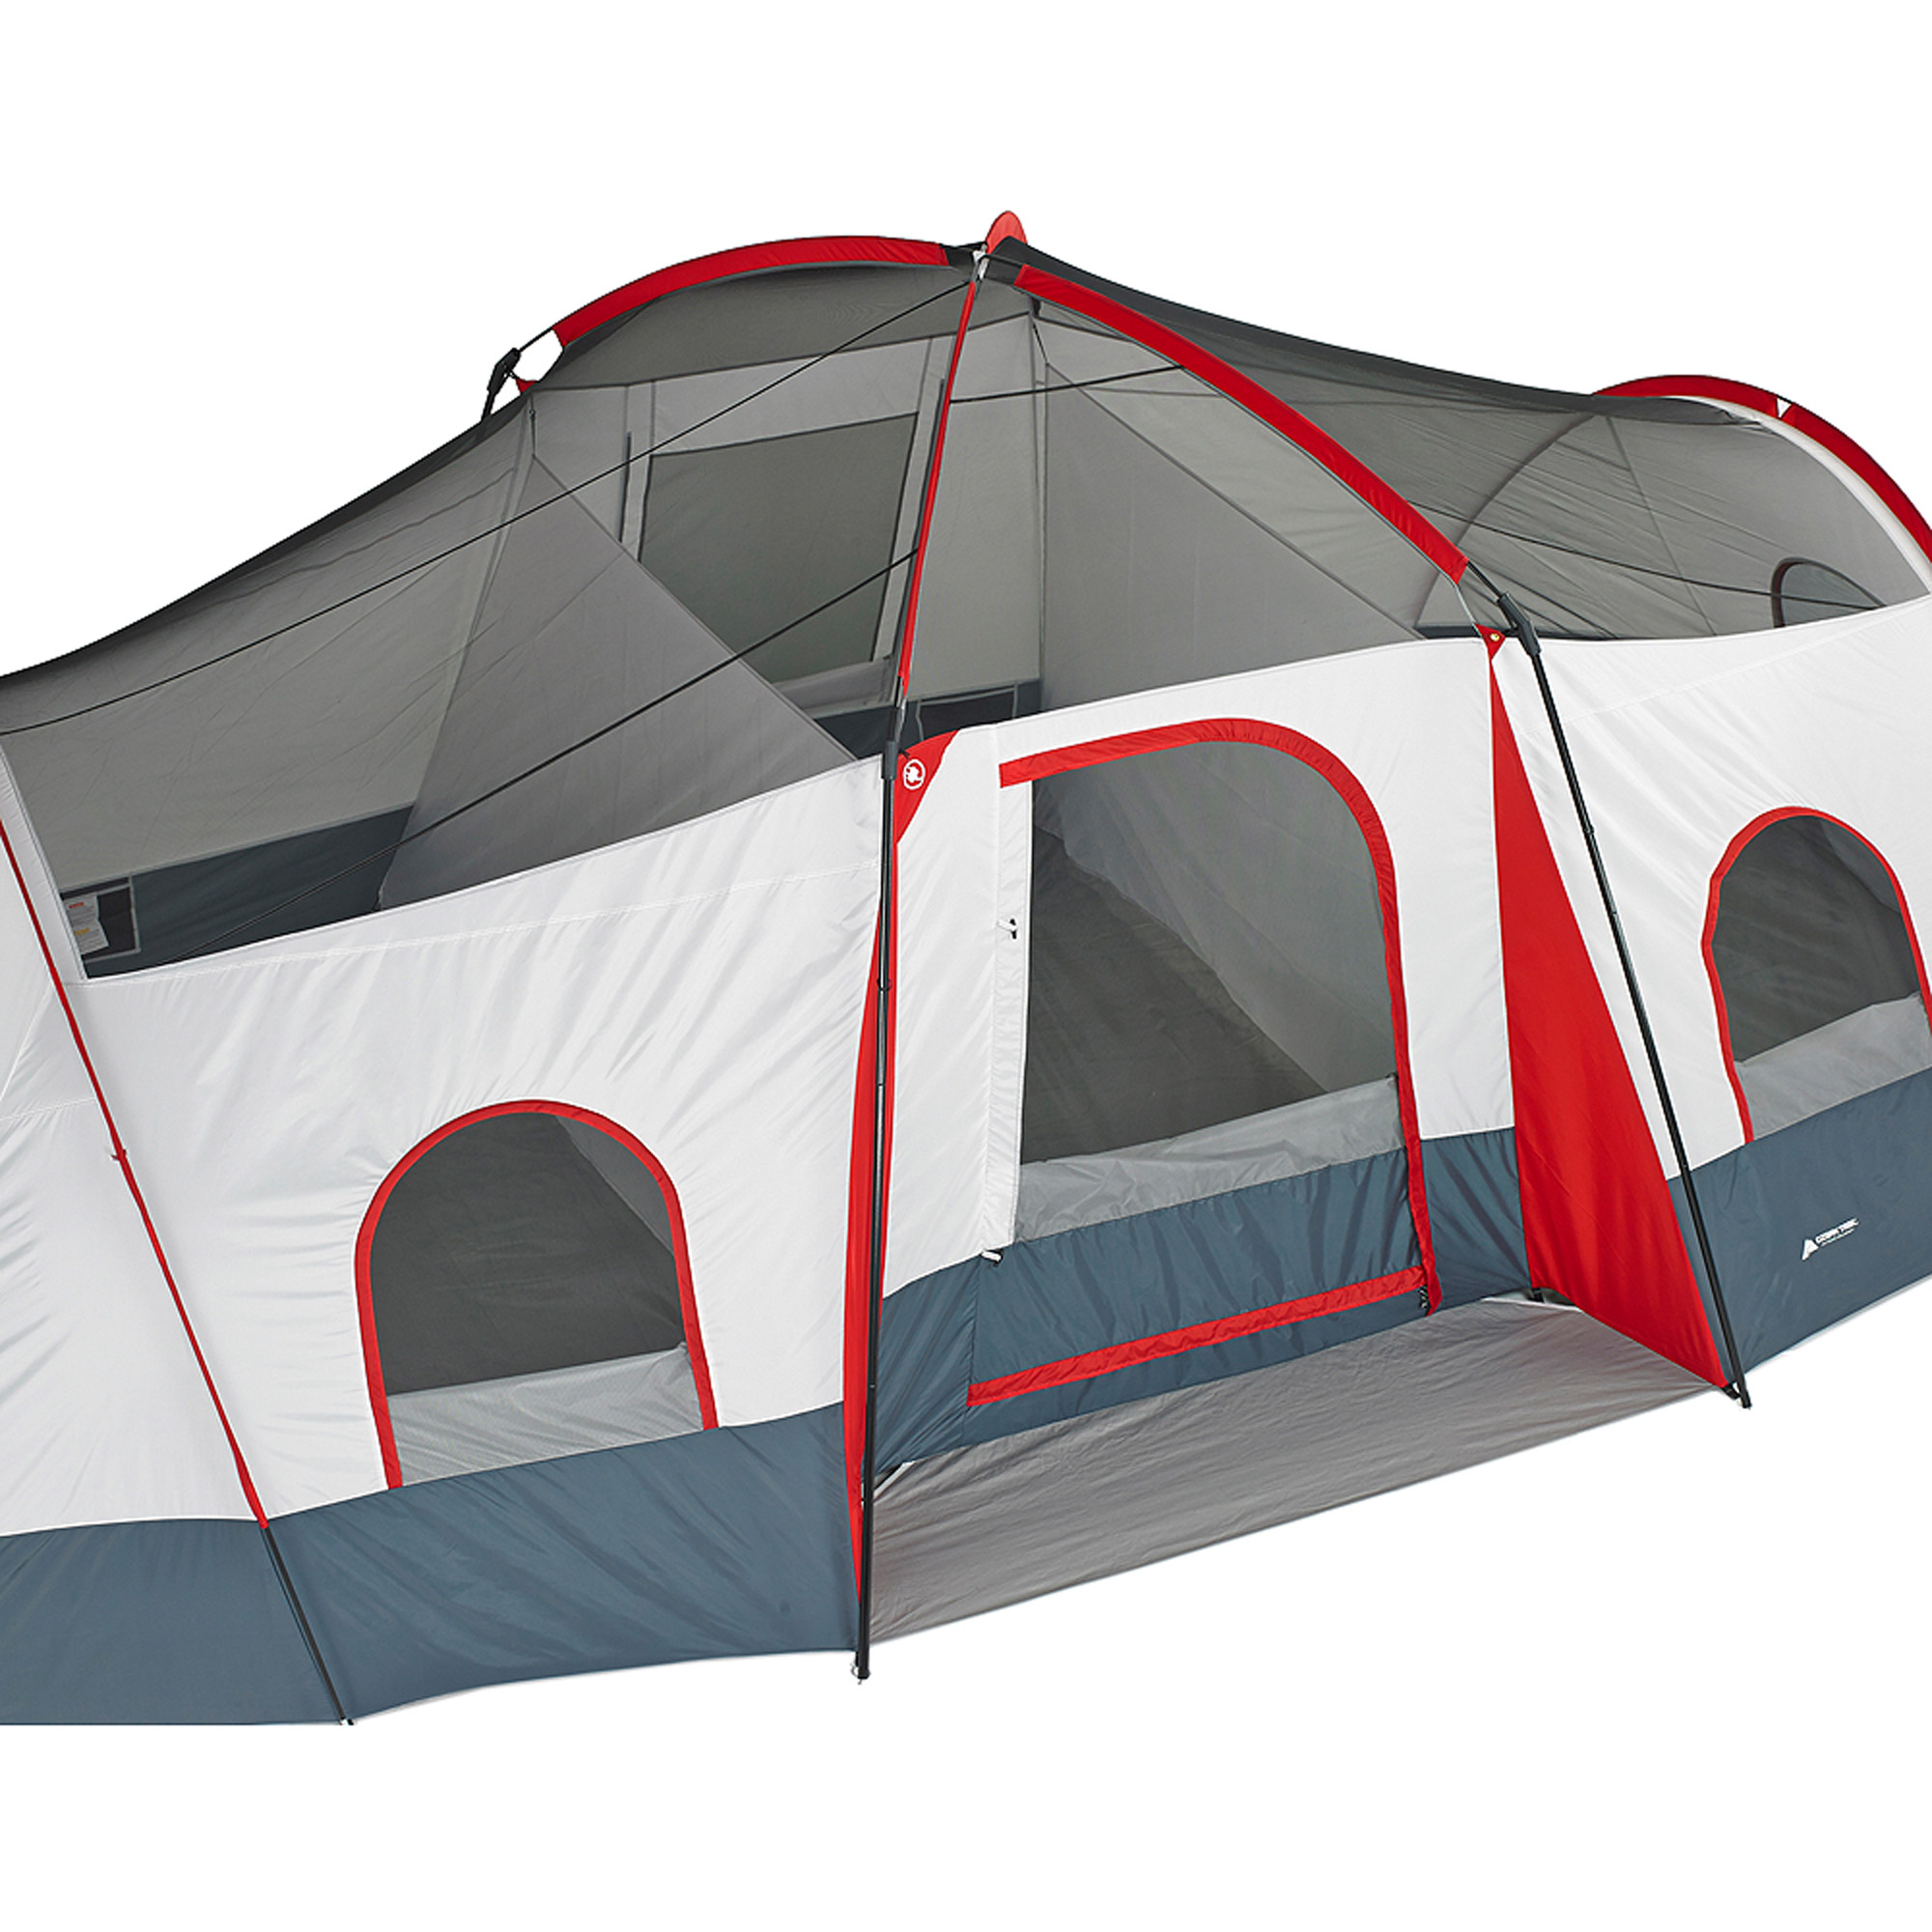 sc 1 st  Walmart & Ozark Trail 10-Person Cabin Tent with Integrated E-Port - Walmart.com